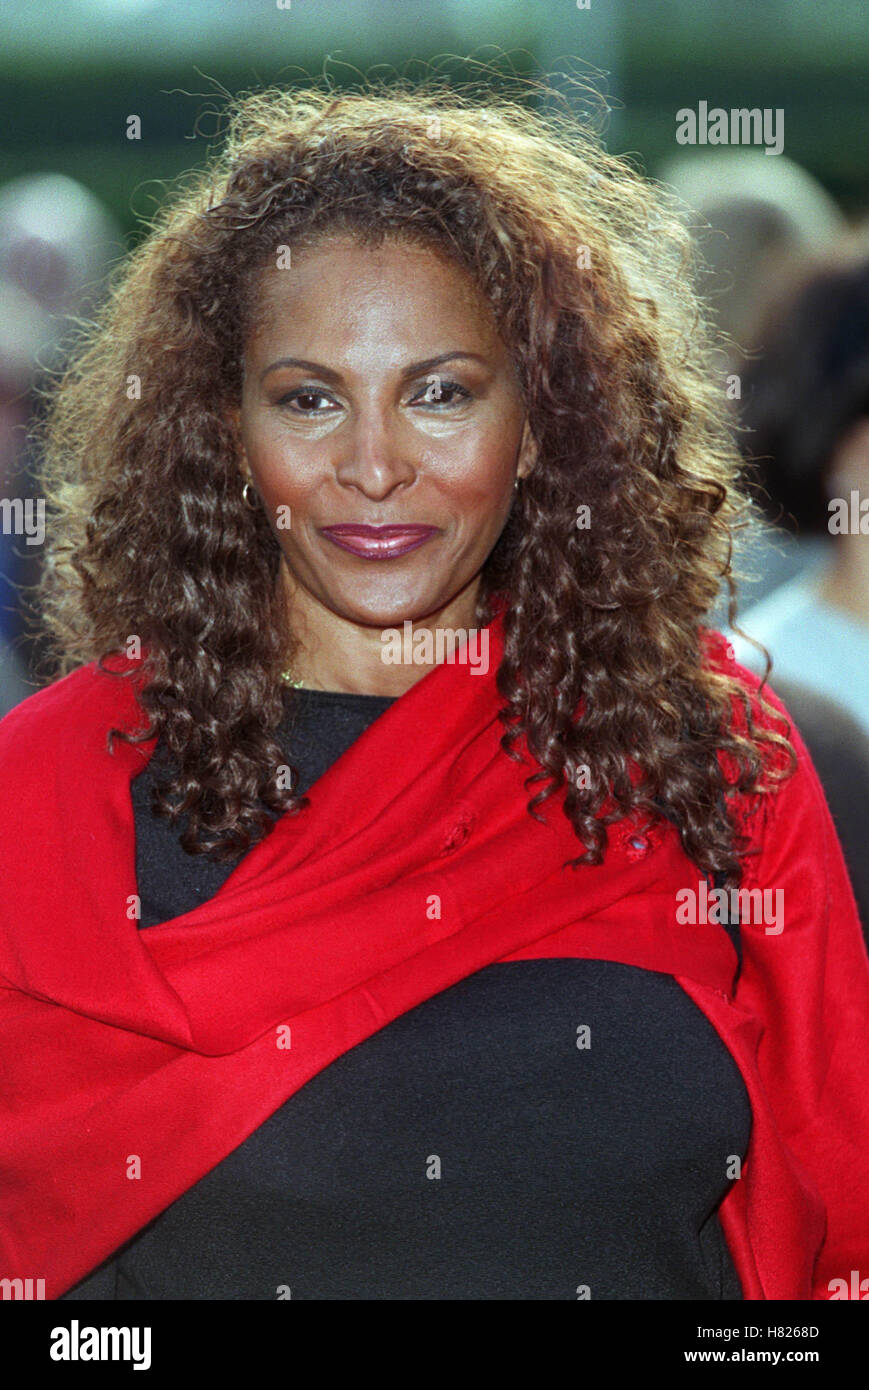 PAM GRIER LOS ANGELES USA 02 February 2000 - Stock Image